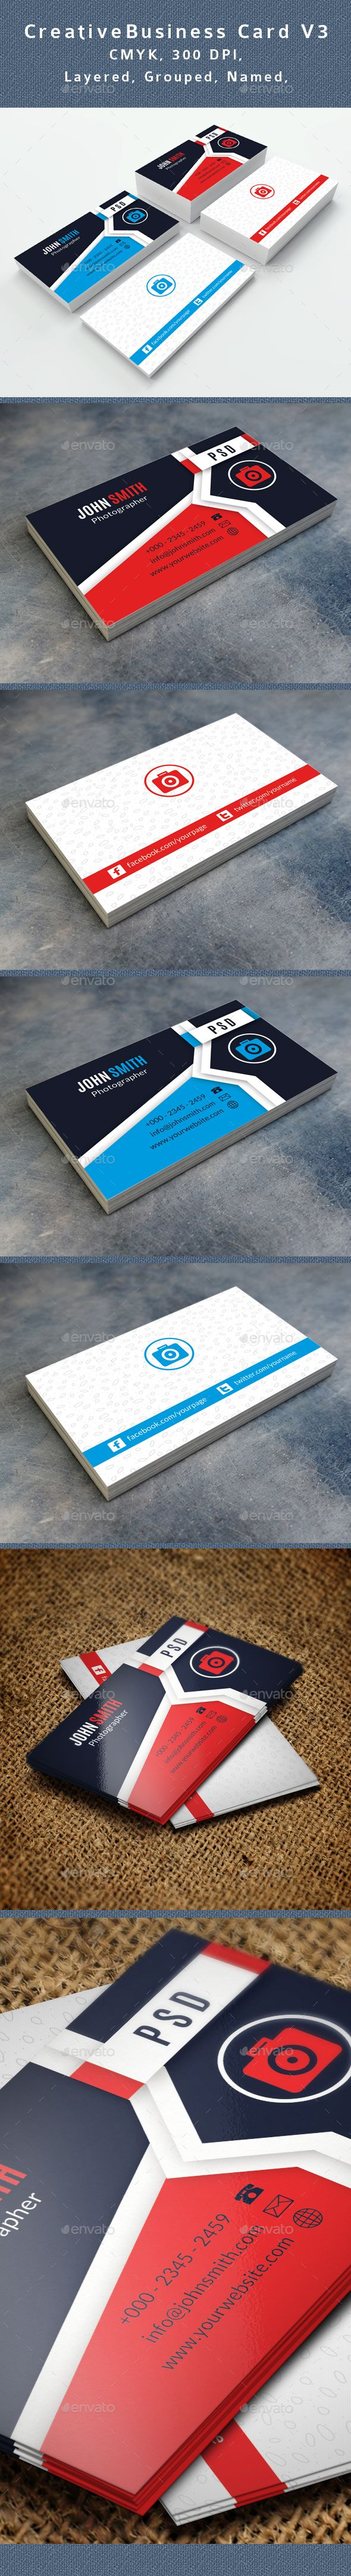 The 25 best grapher business cards ideas on Pinterest